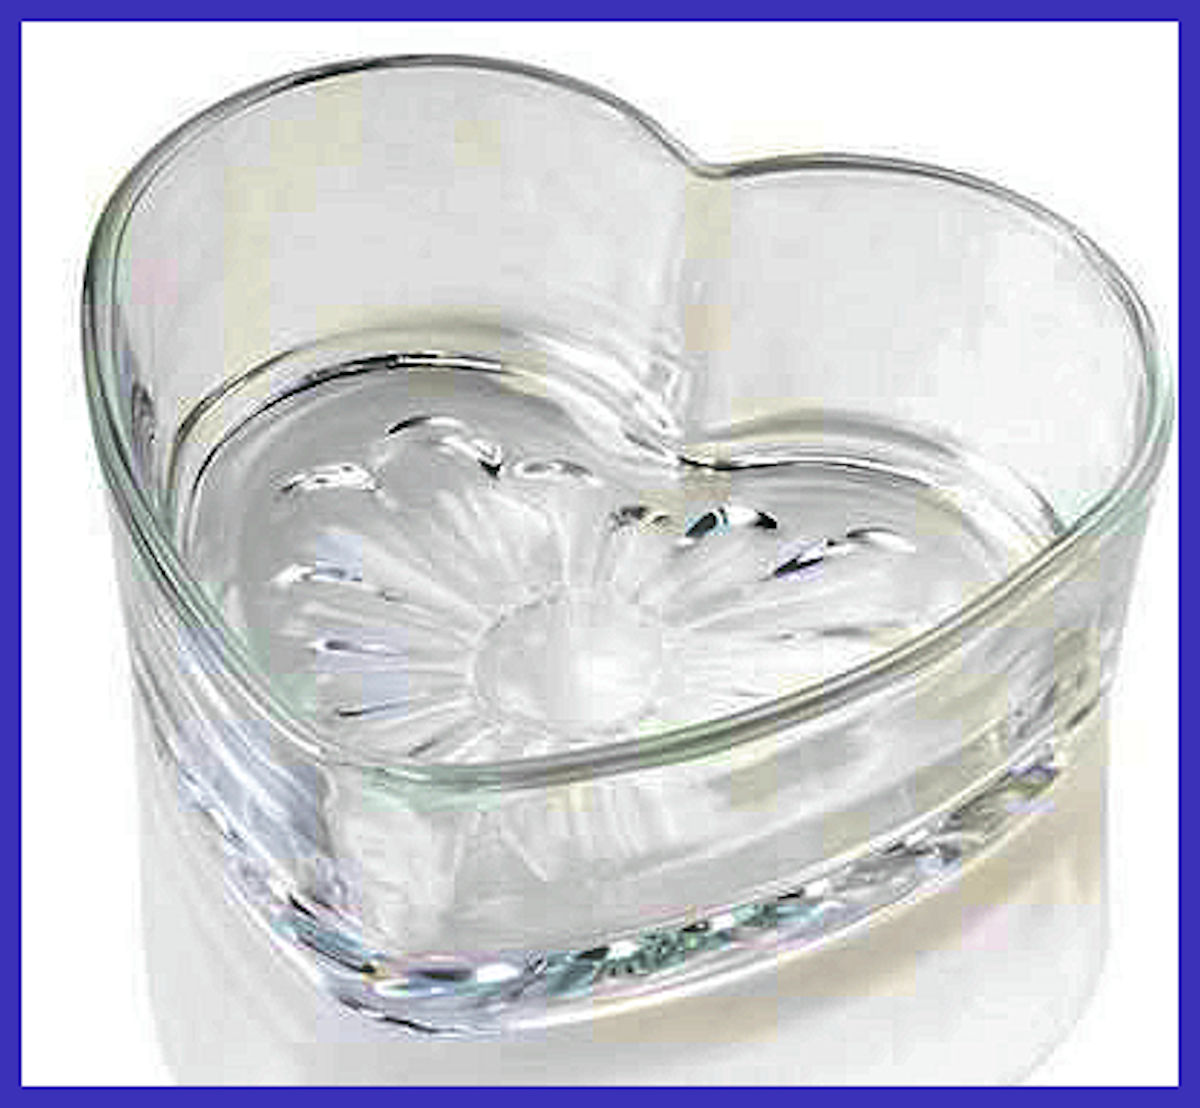 glass-heart-bowl-pix-16161000-2.jpg